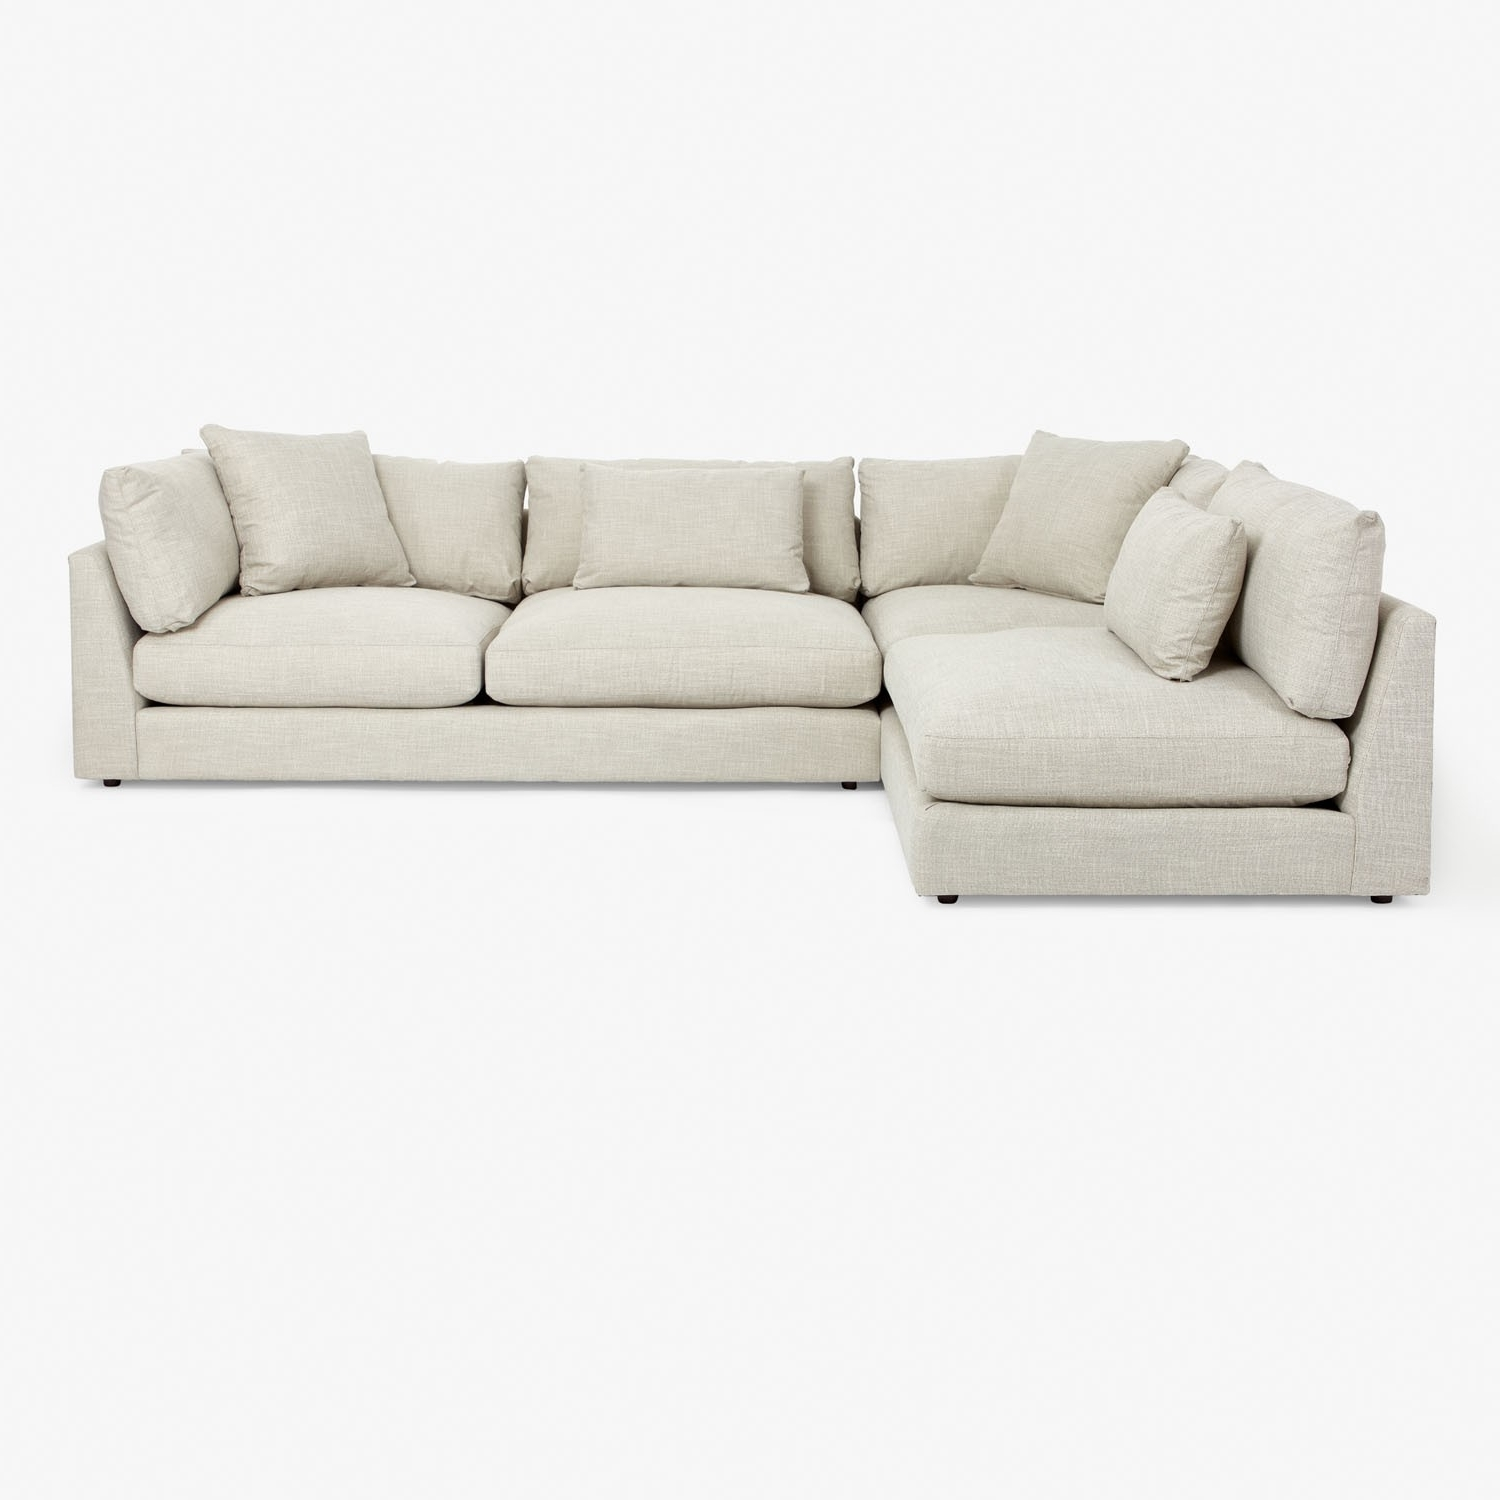 2018 Modern Sectional Sofas In Modern Sectional Sofas For Nyc Apartments At Abc Home (View 1 of 20)